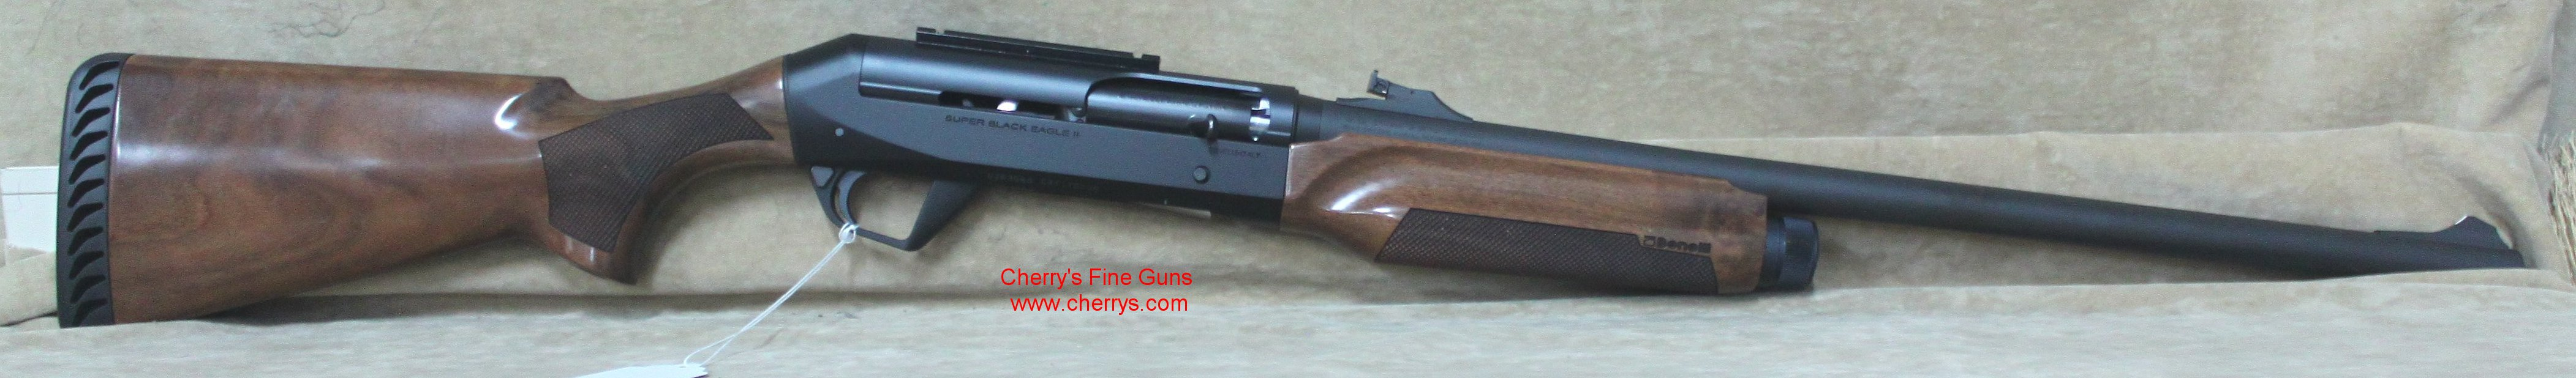 Cherrys Long Gun Inventory Page Remington870partsdiagram The Butt Plate Rests Against Shooters